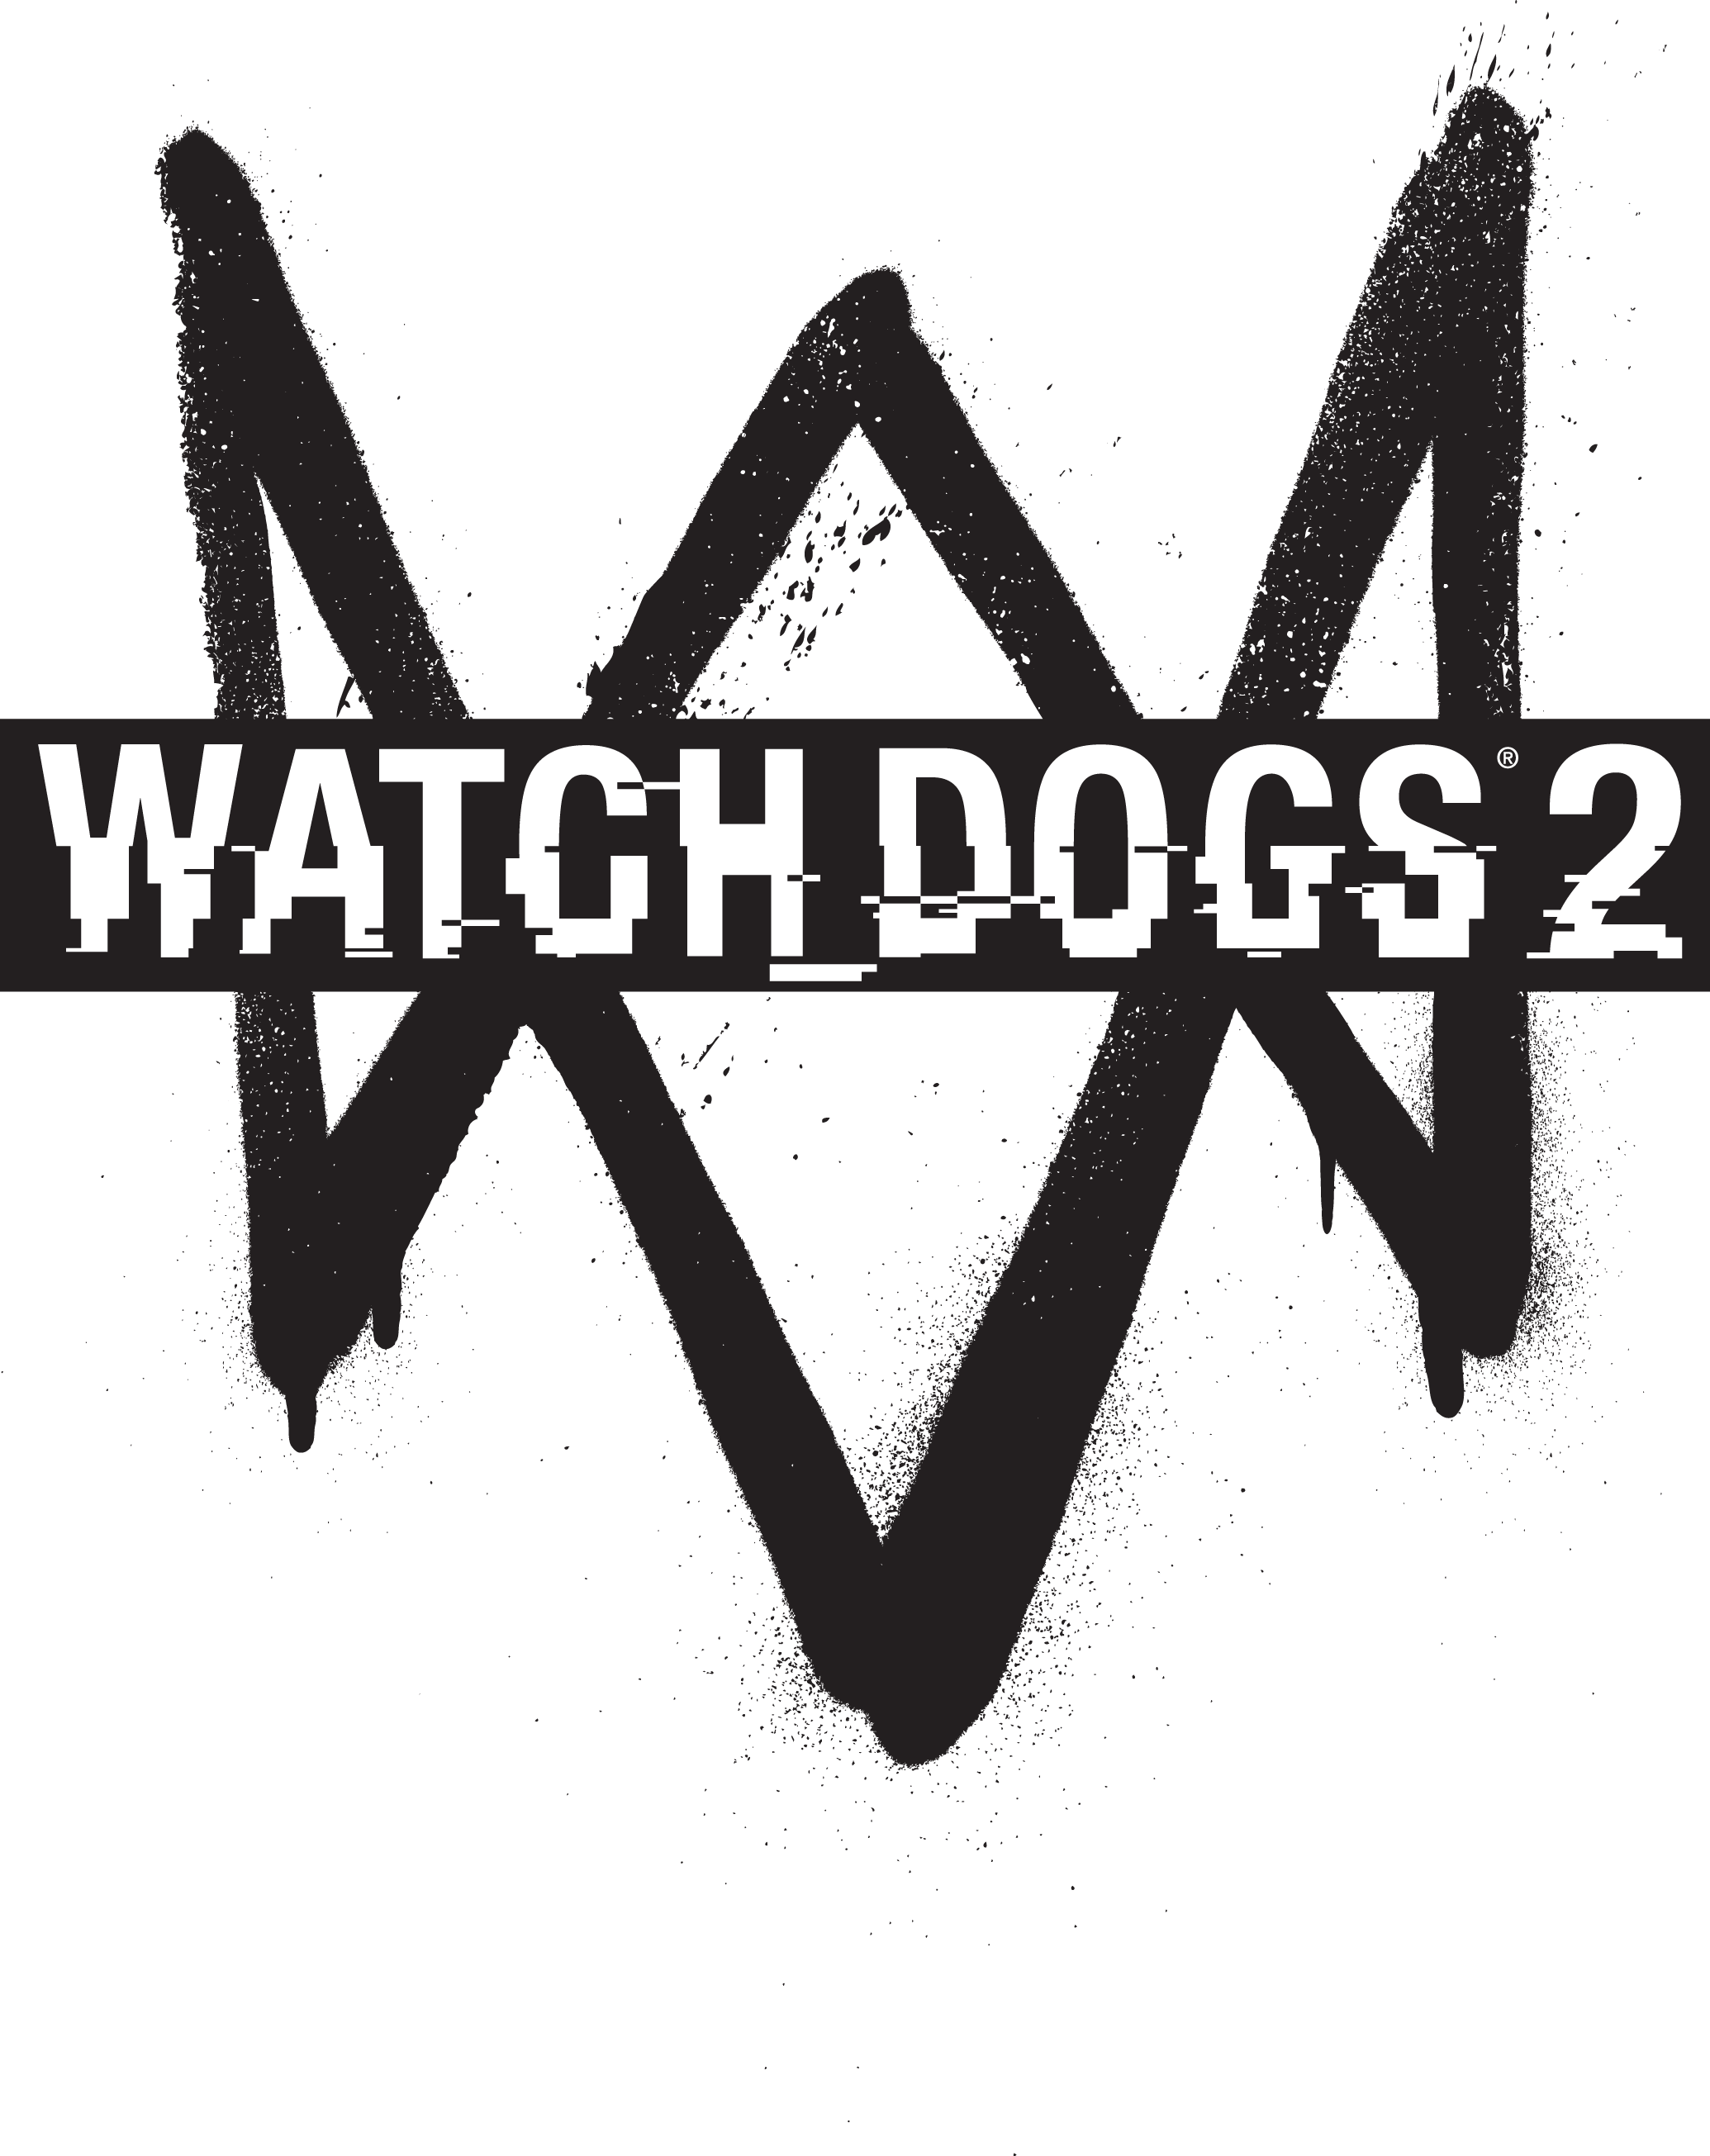 Youtube clipart badass. Watch dogs review invision